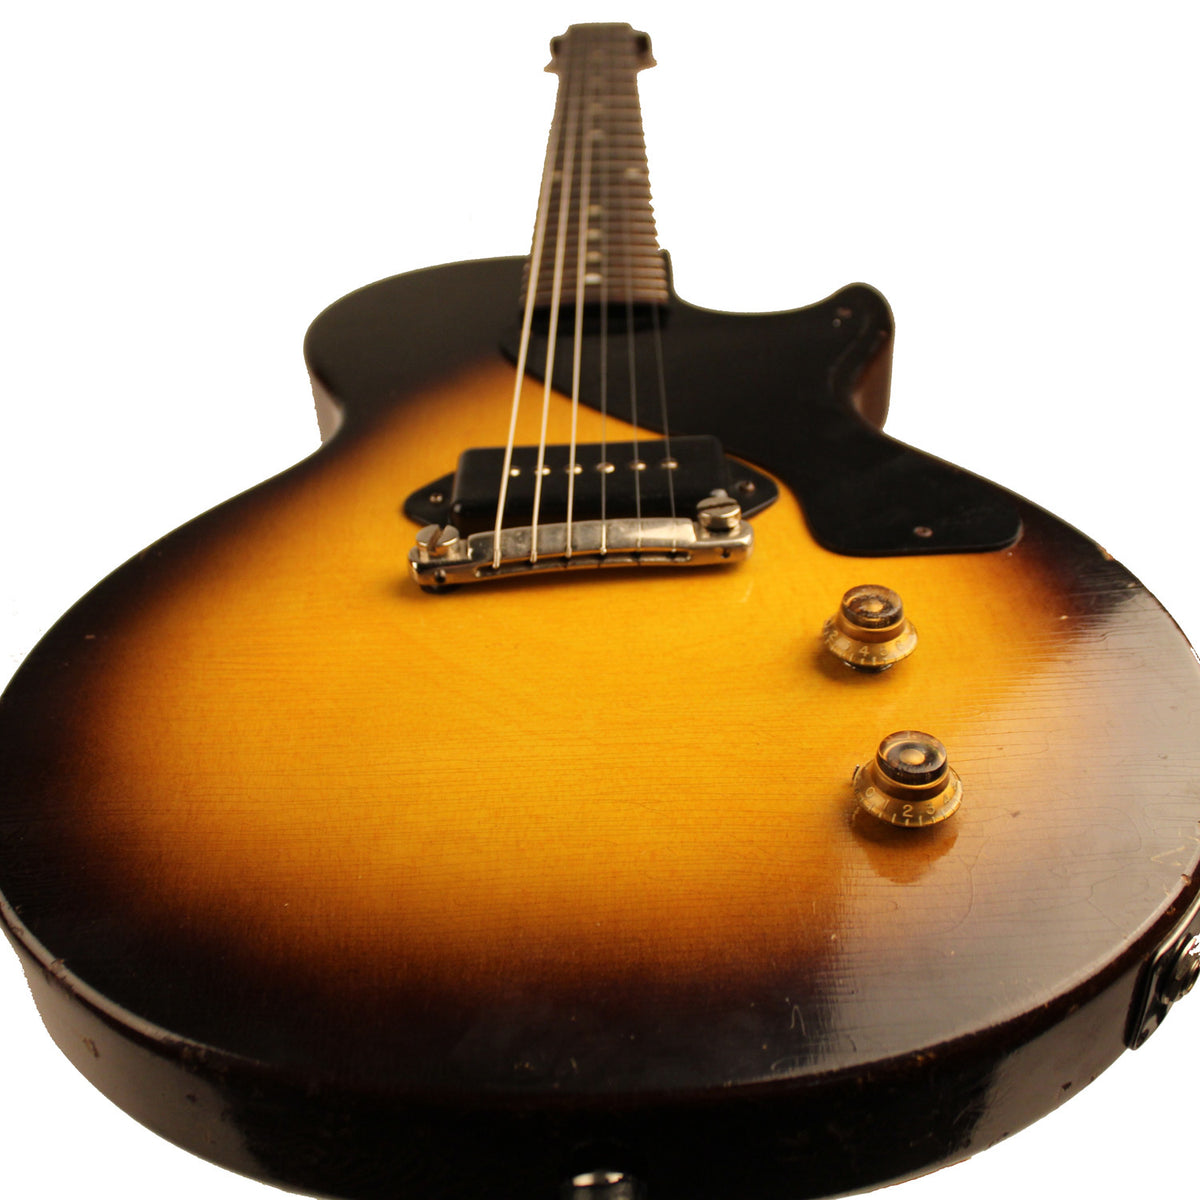 1956 Gibson Les Paul Junior - Garrett Park Guitars  - 10